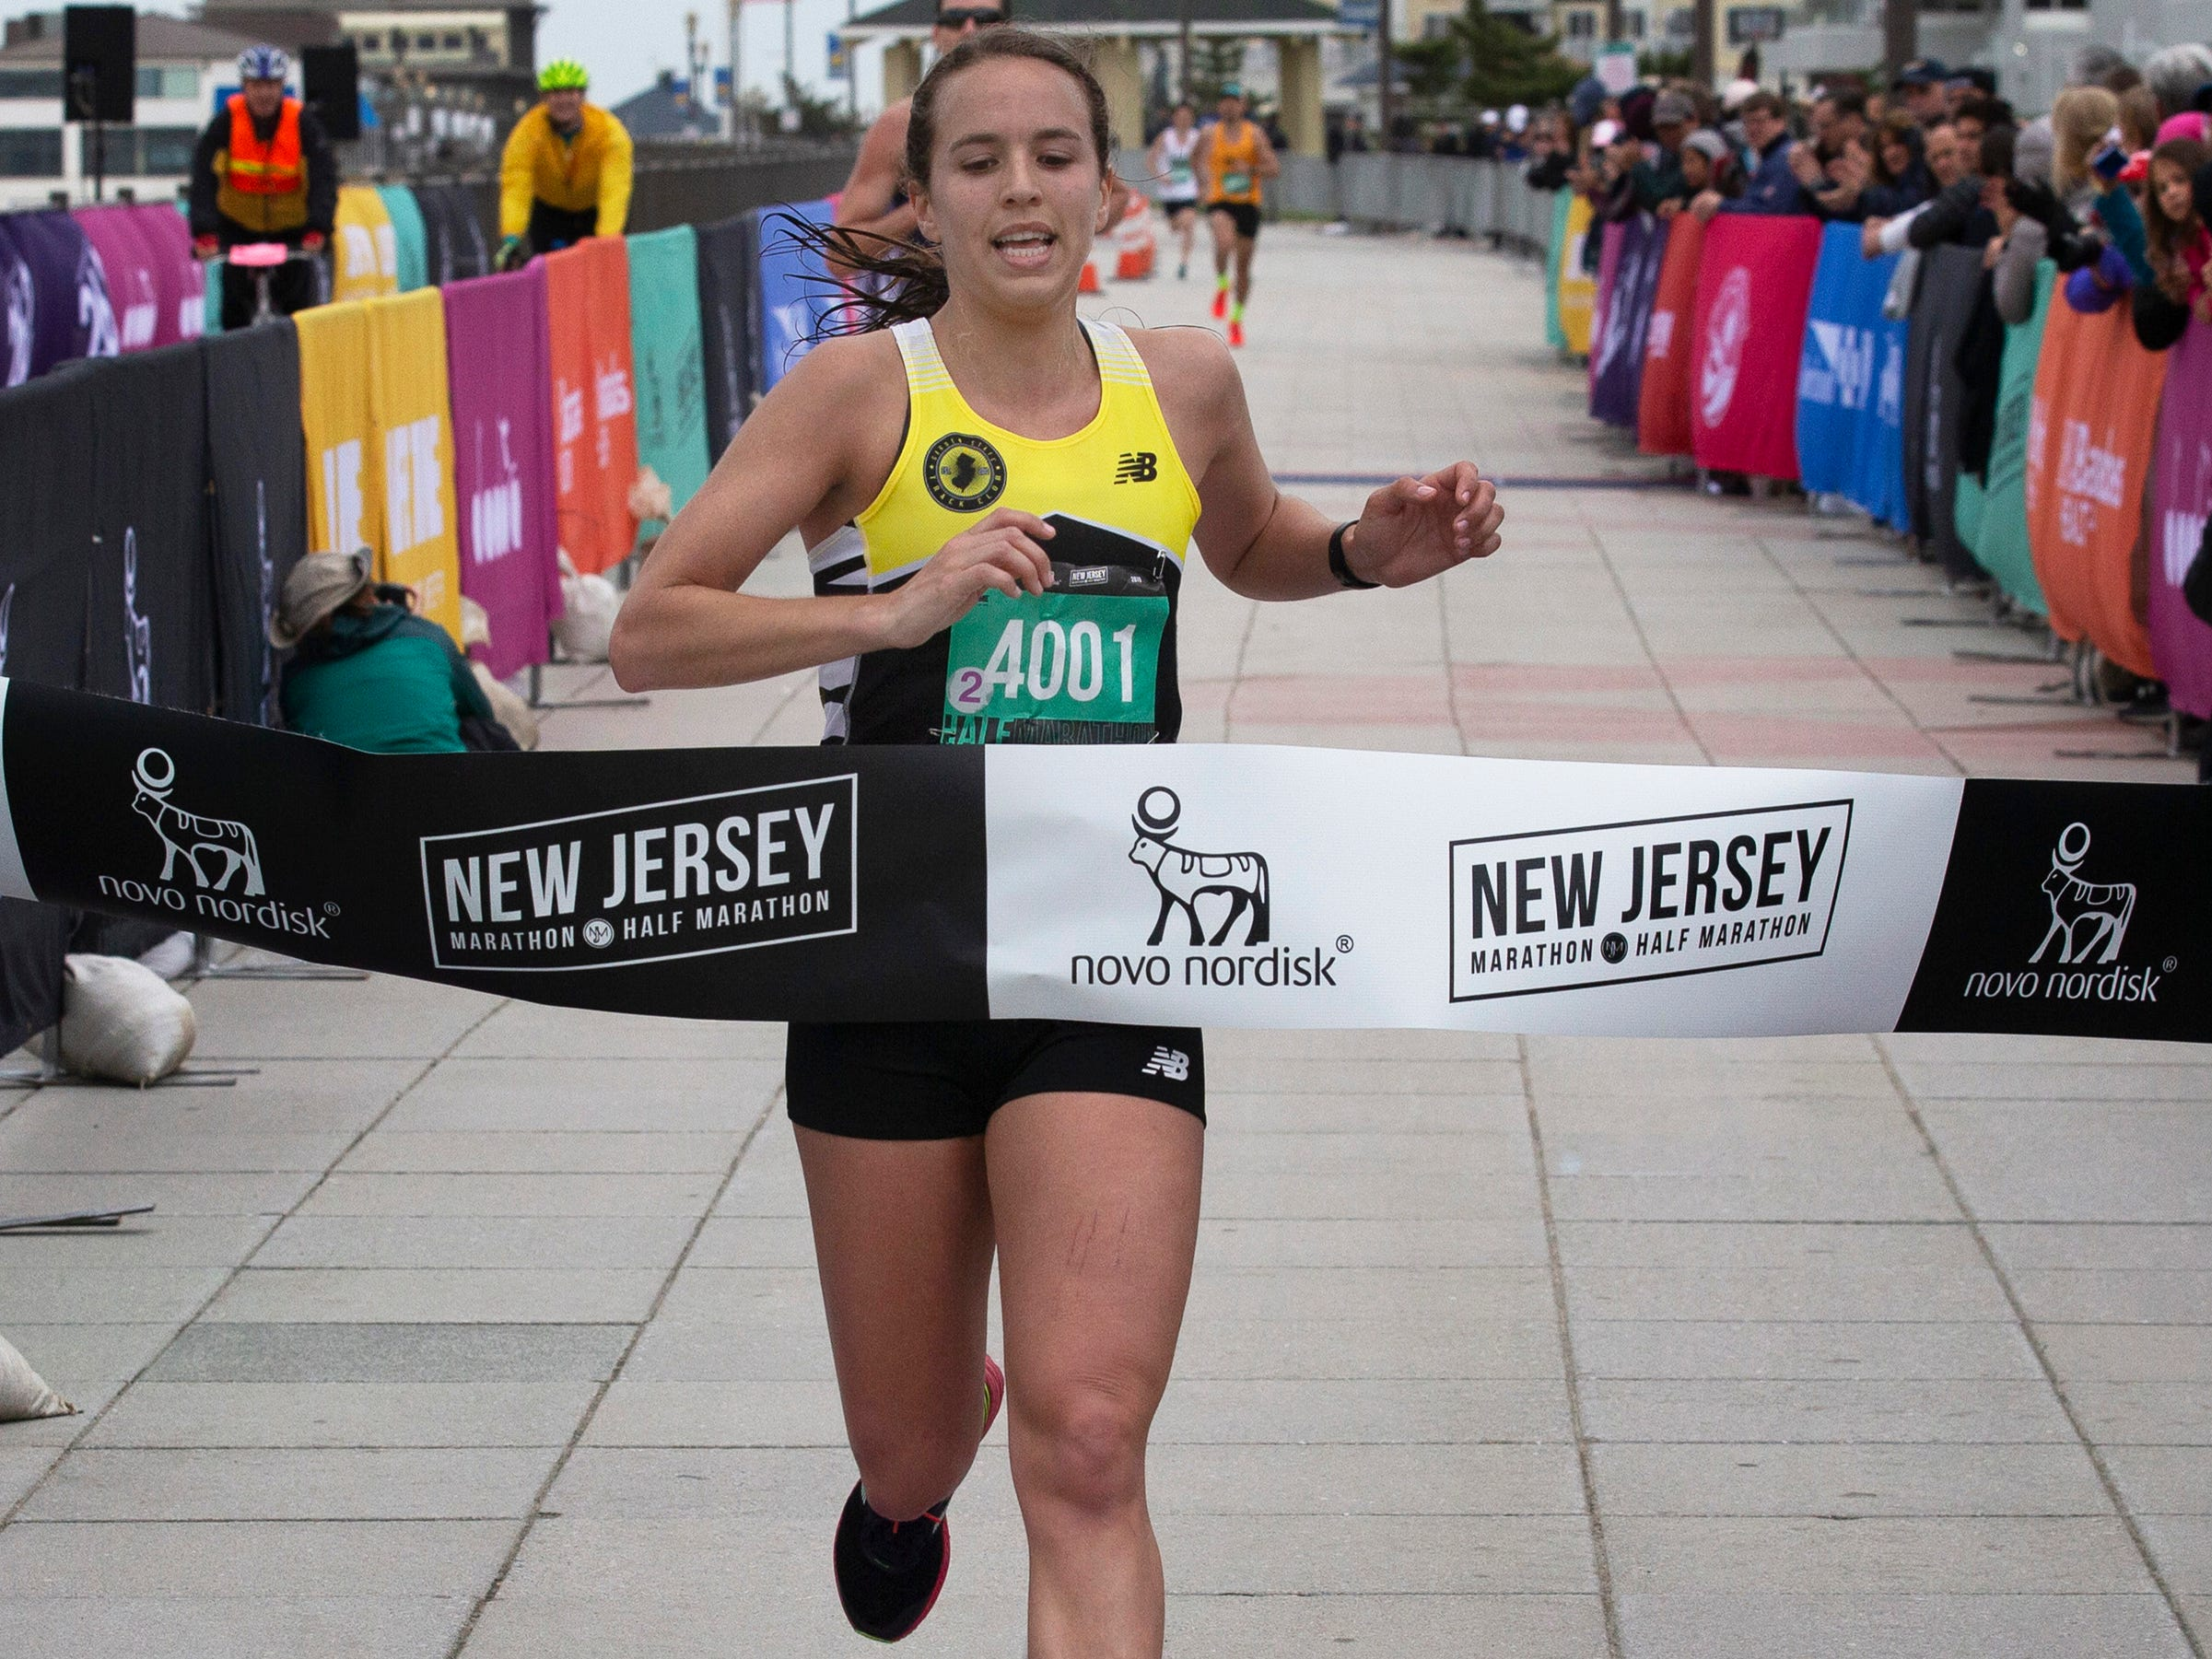 Shelby Goose of Englewood was the first woman across in half marothon during the 2019 Novo Nordisk New Jersey Marathon and Half Marathon which started at Monmouth Park in Oceanport and ended at Ocean Promenade in Long Branch.